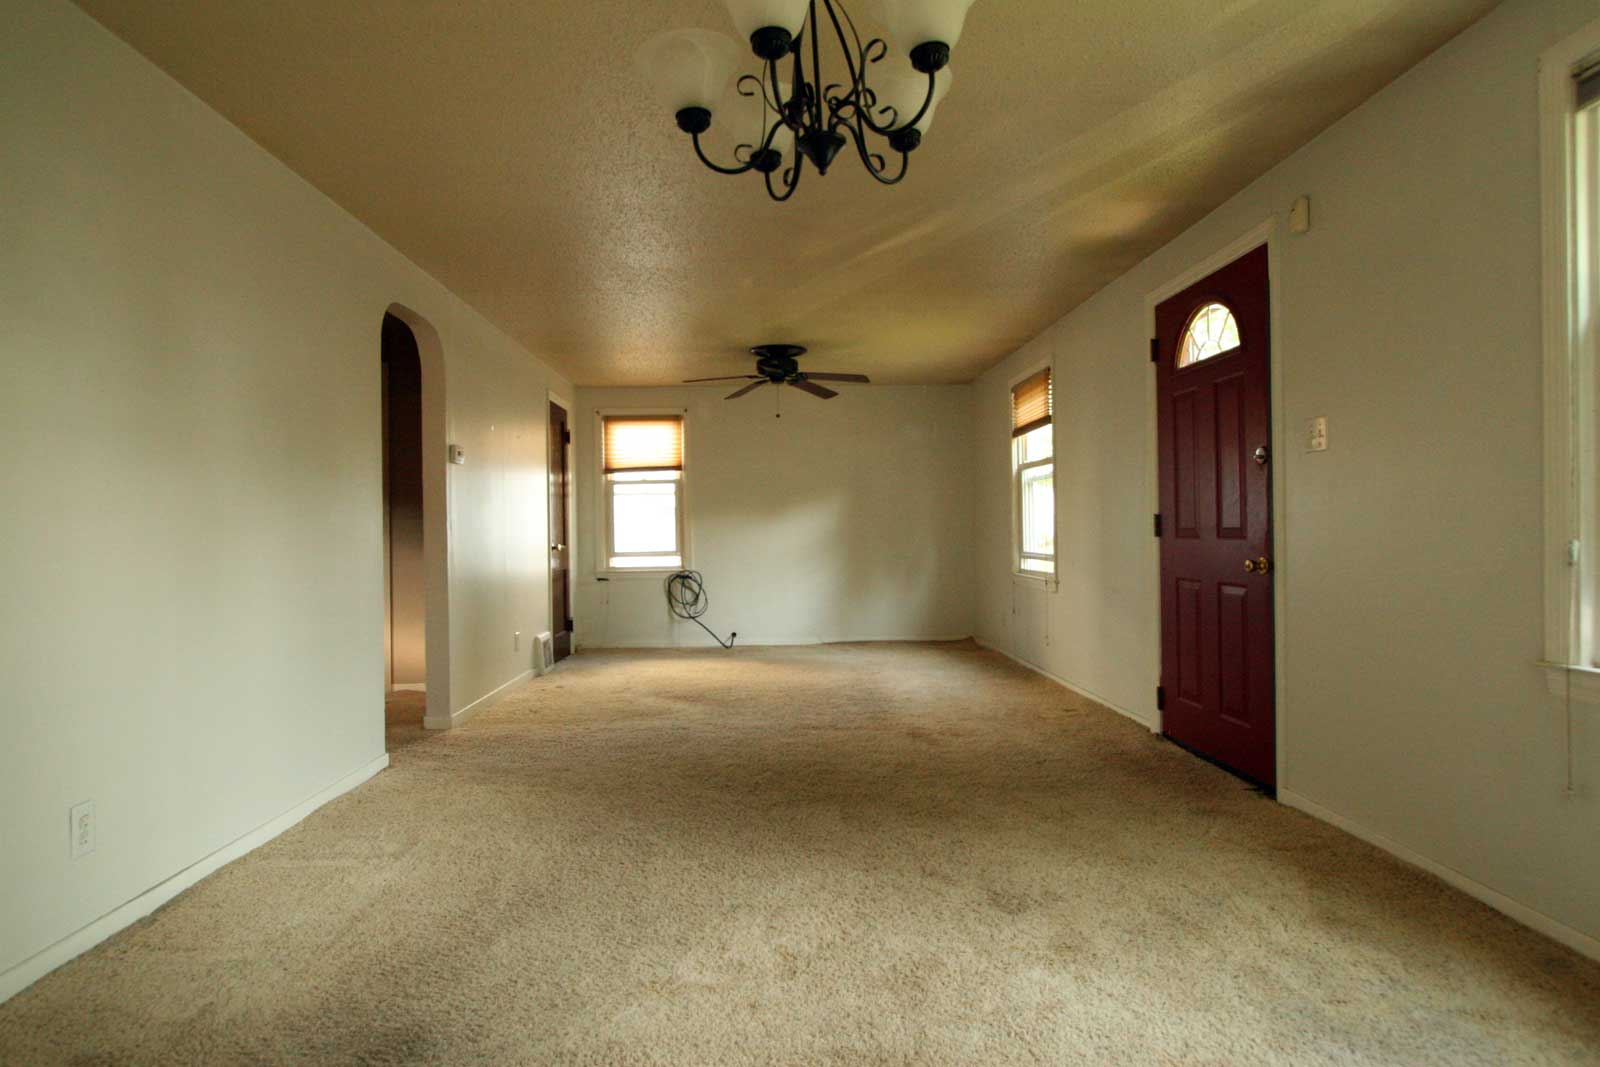 Existing condition in the living/dining space